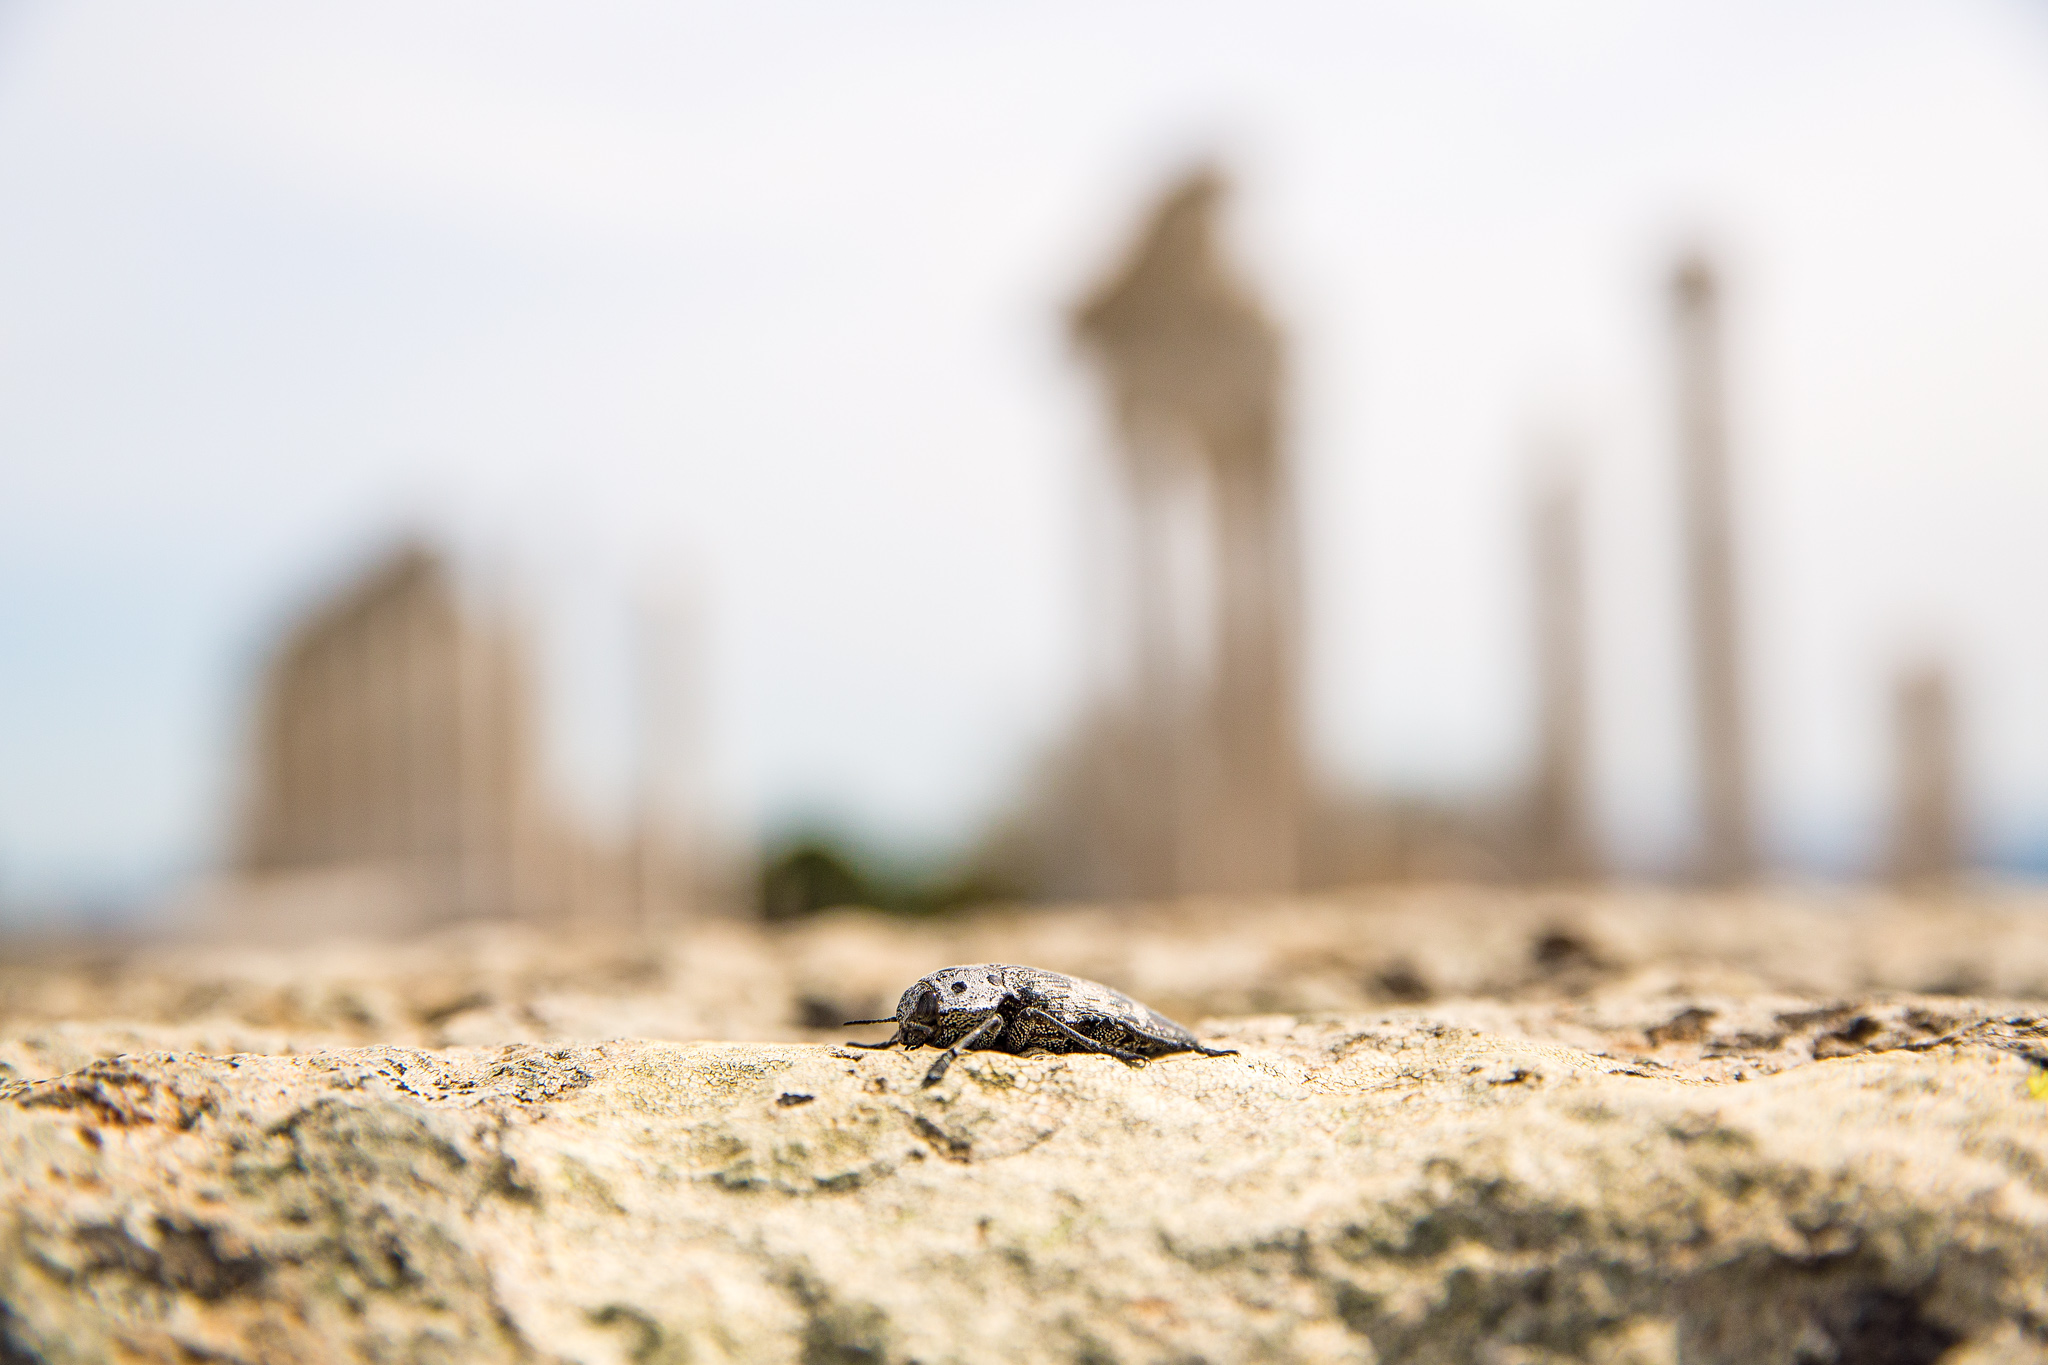 bergama_ruins-pergamon-2188-insect-with-pillars-in-the-background.jpg